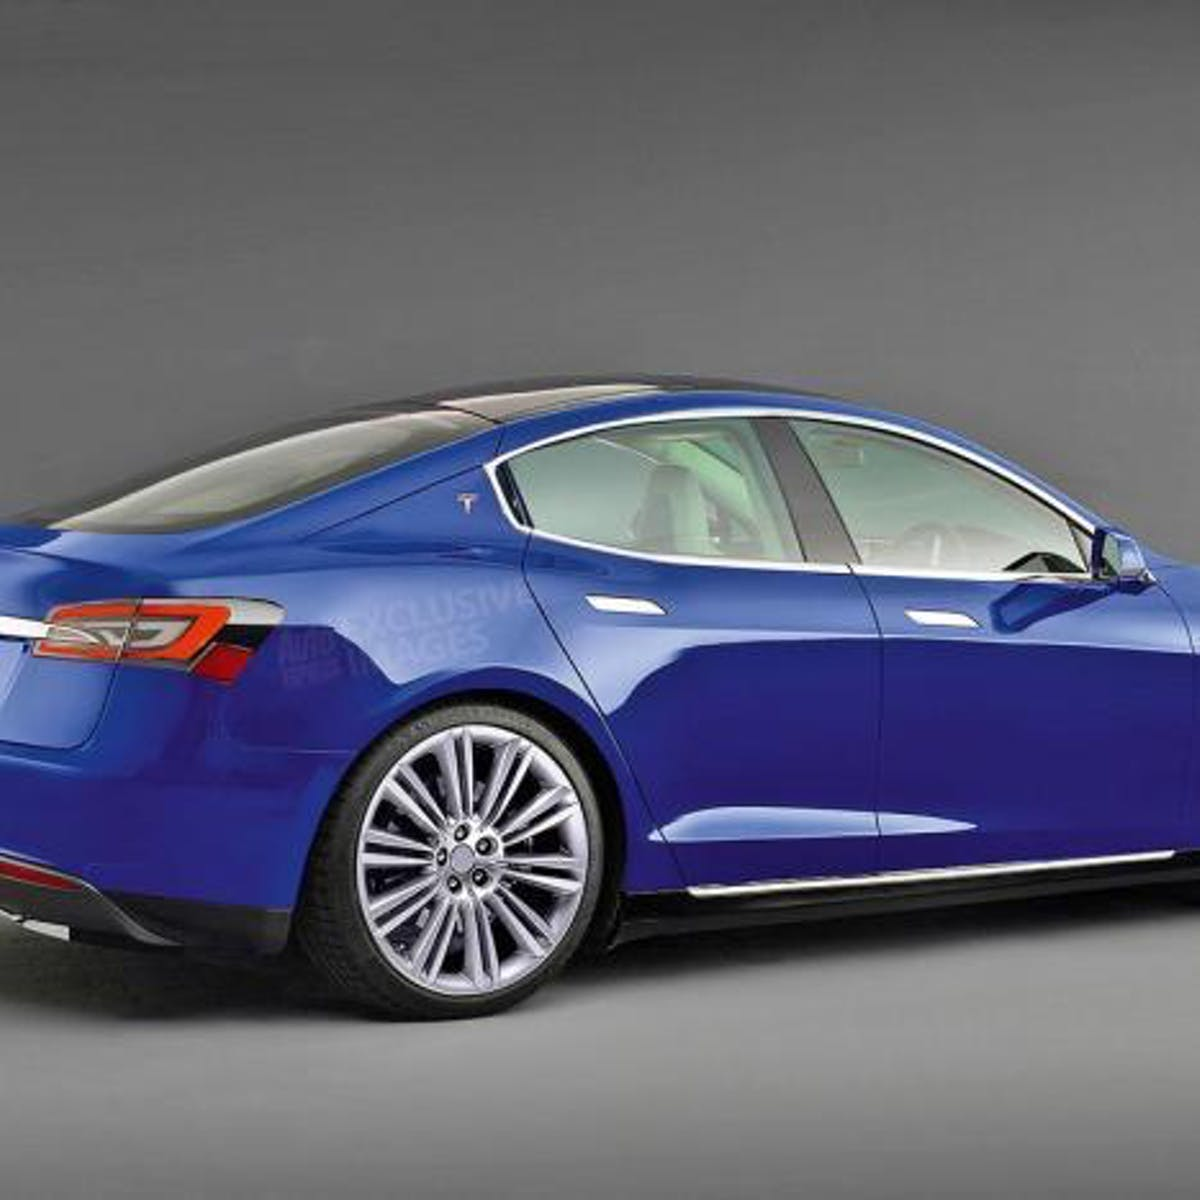 People Are Betting Hundreds Of Dollars The Tesla Model 3 Will Come Out Late